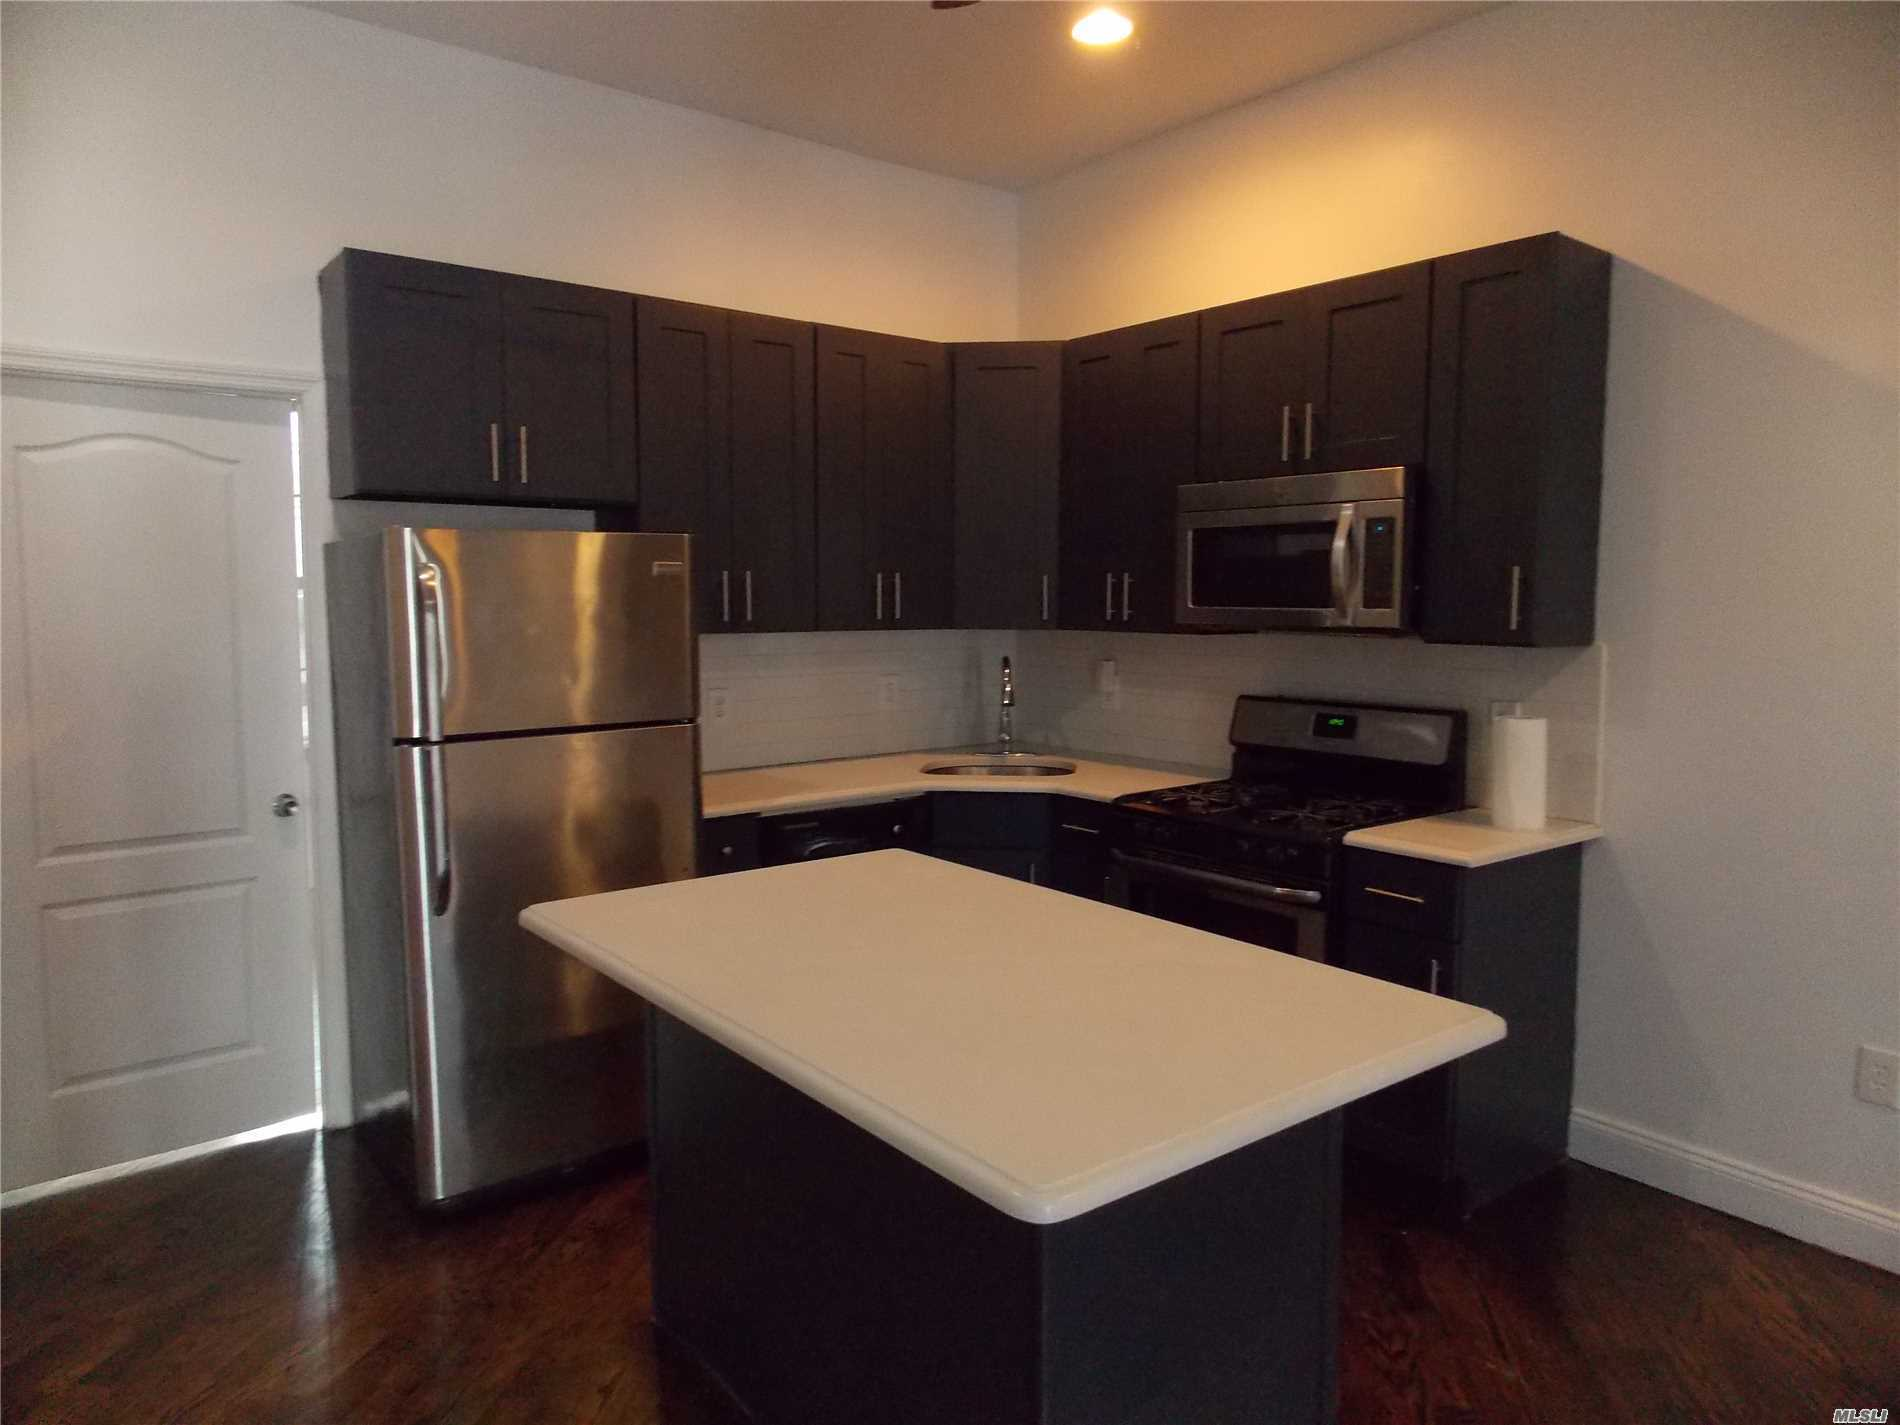 Renovated 2 Levels, 4 Bedrooms, 3 Full Baths. Close To Subway, Restaurants And Shops.